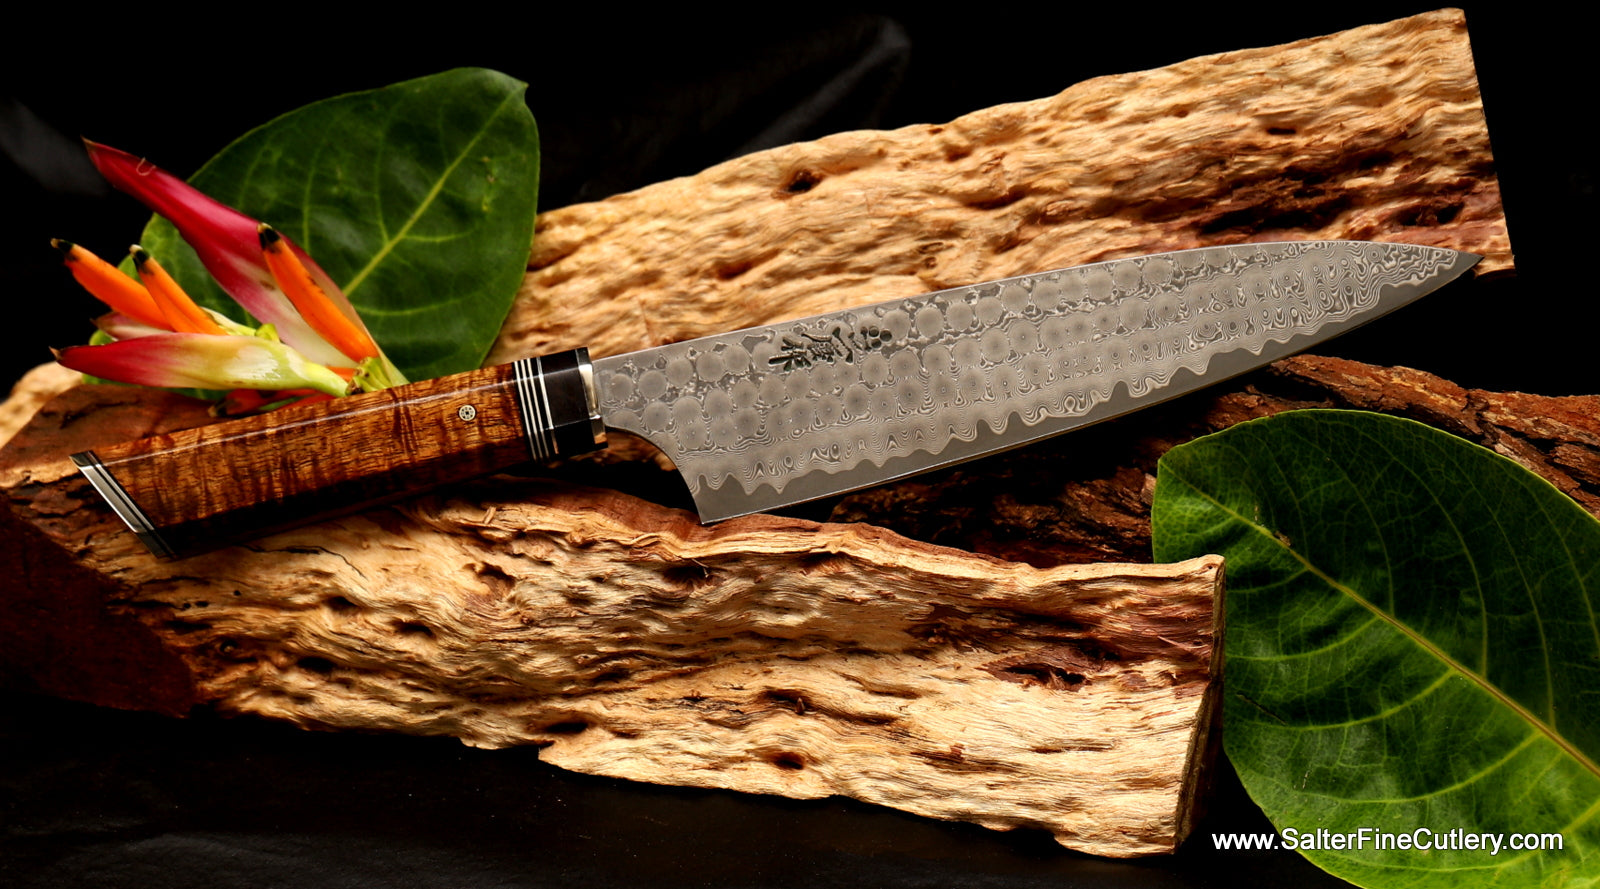 210mm handmade custom collectible chef knife from Salter Fine Cutlery of Hawaii